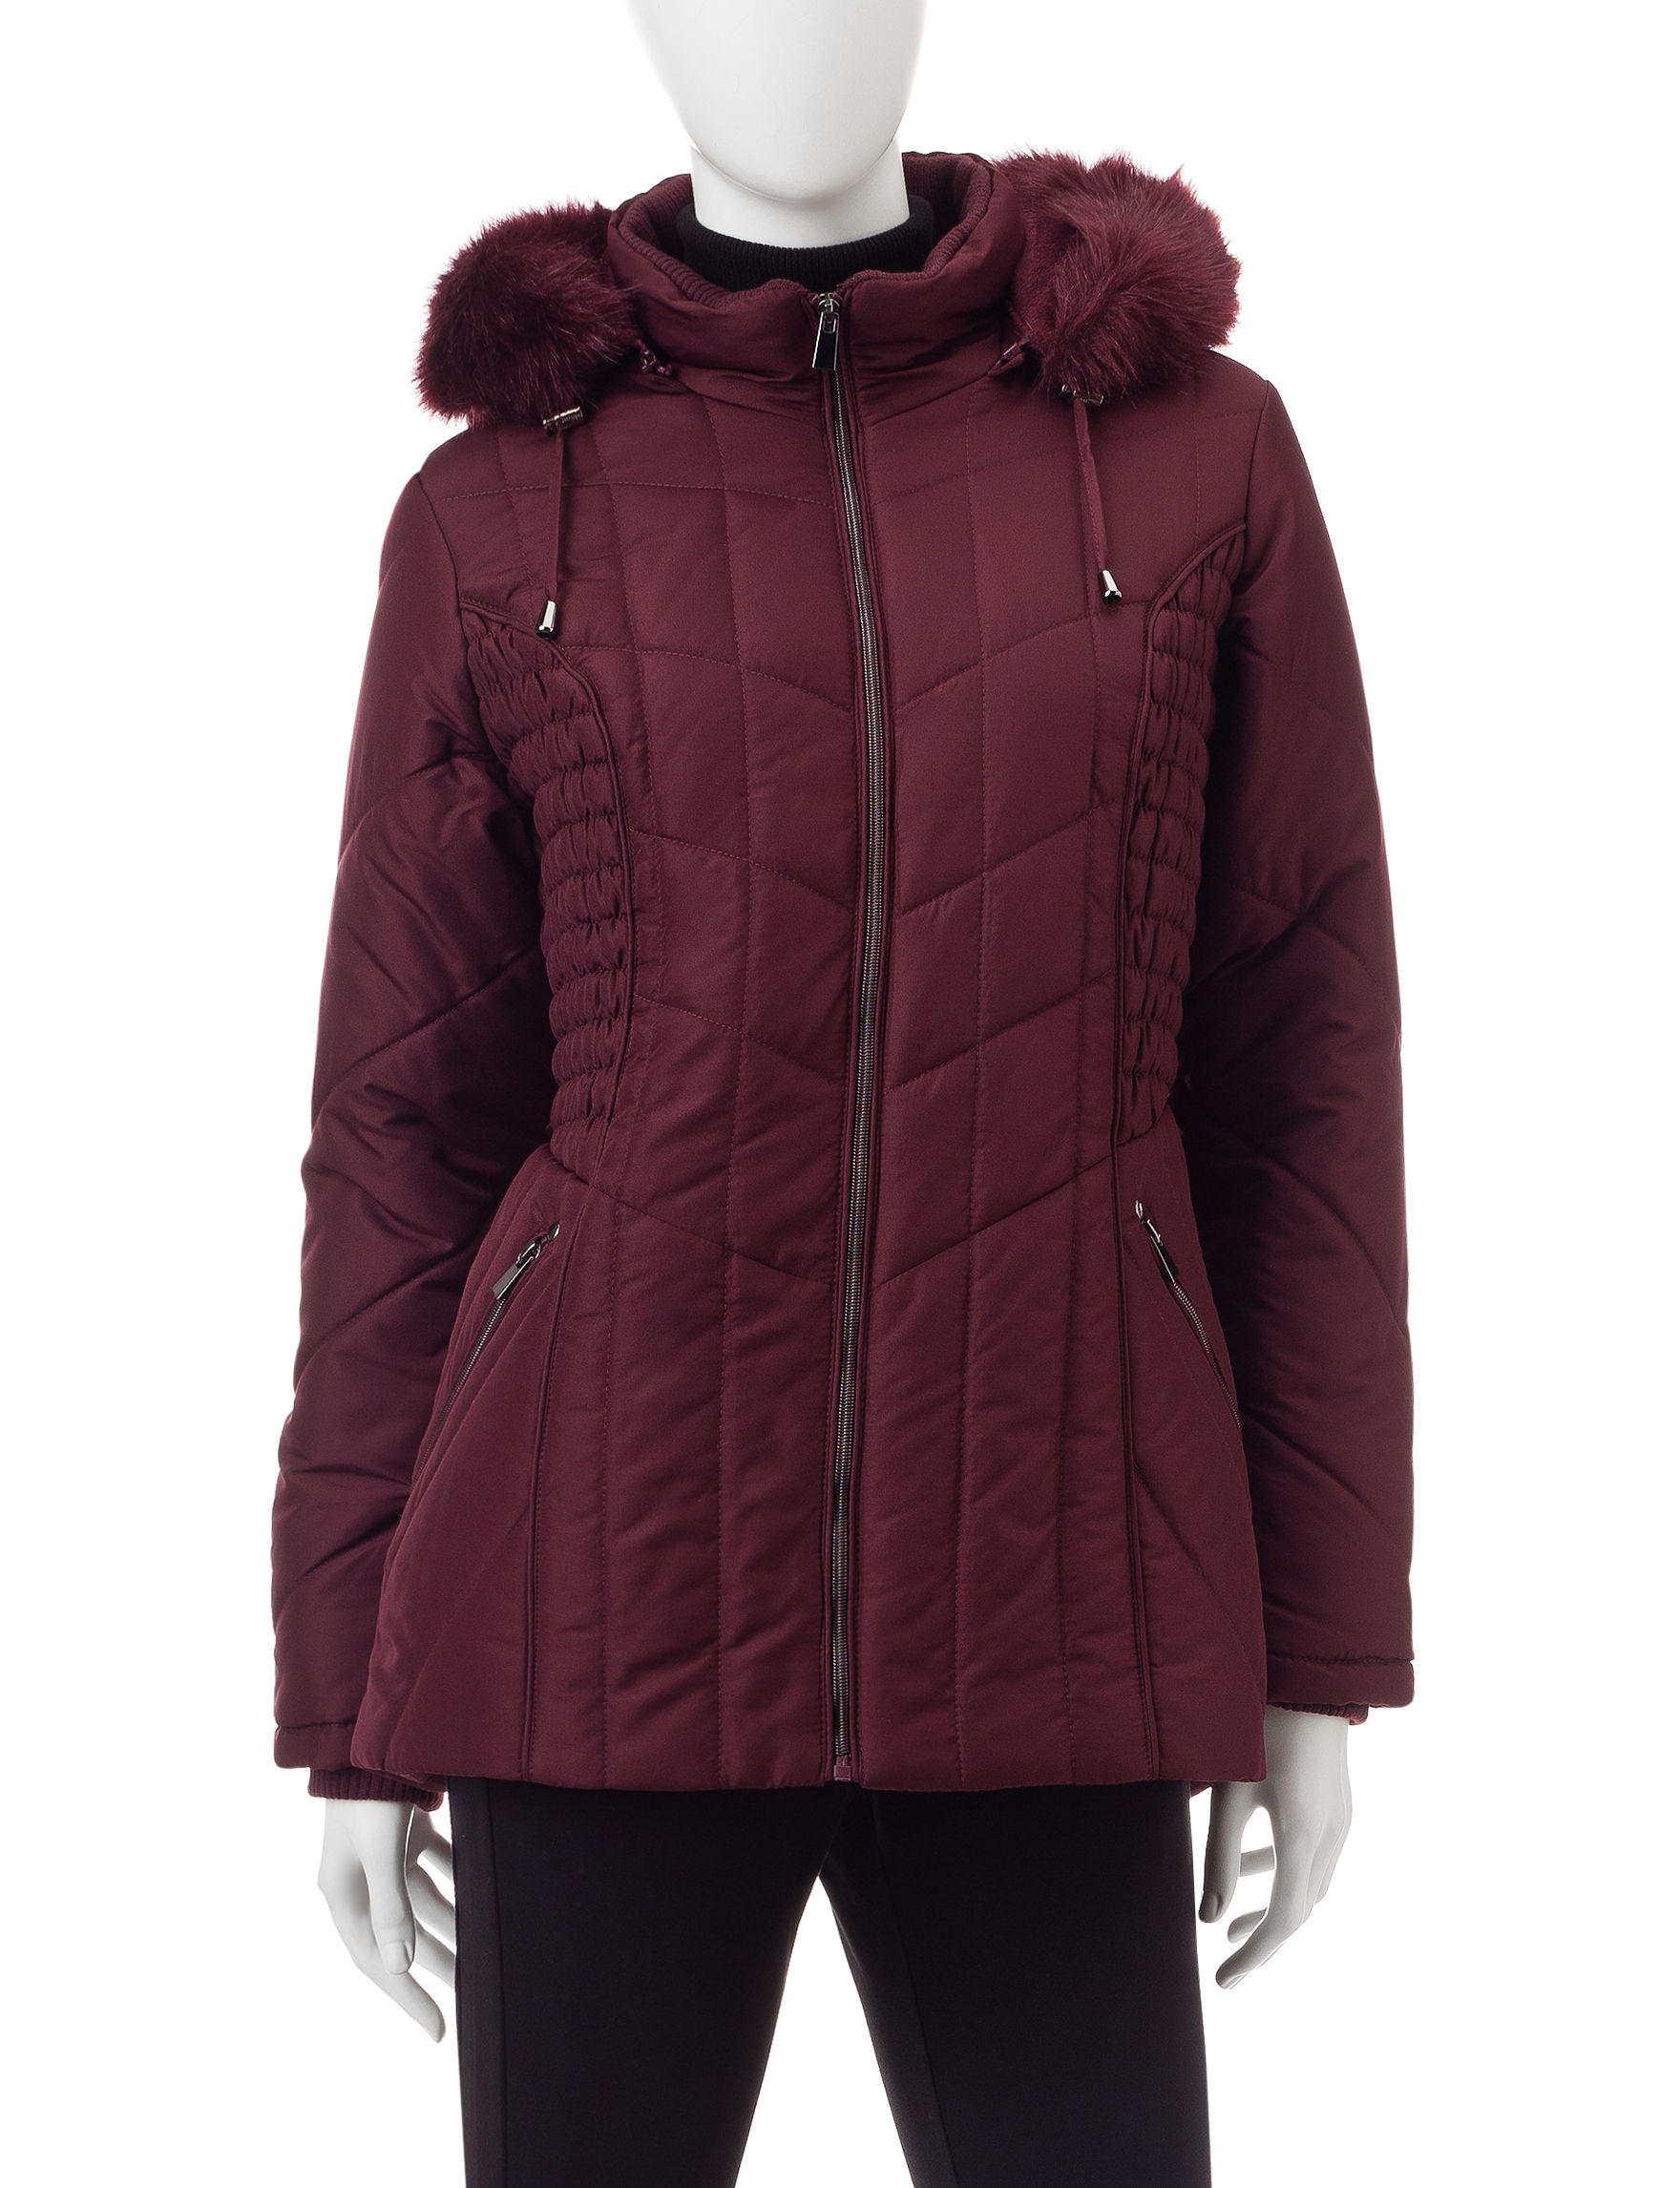 Valerie Stevens Purple Puffer & Quilted Jackets